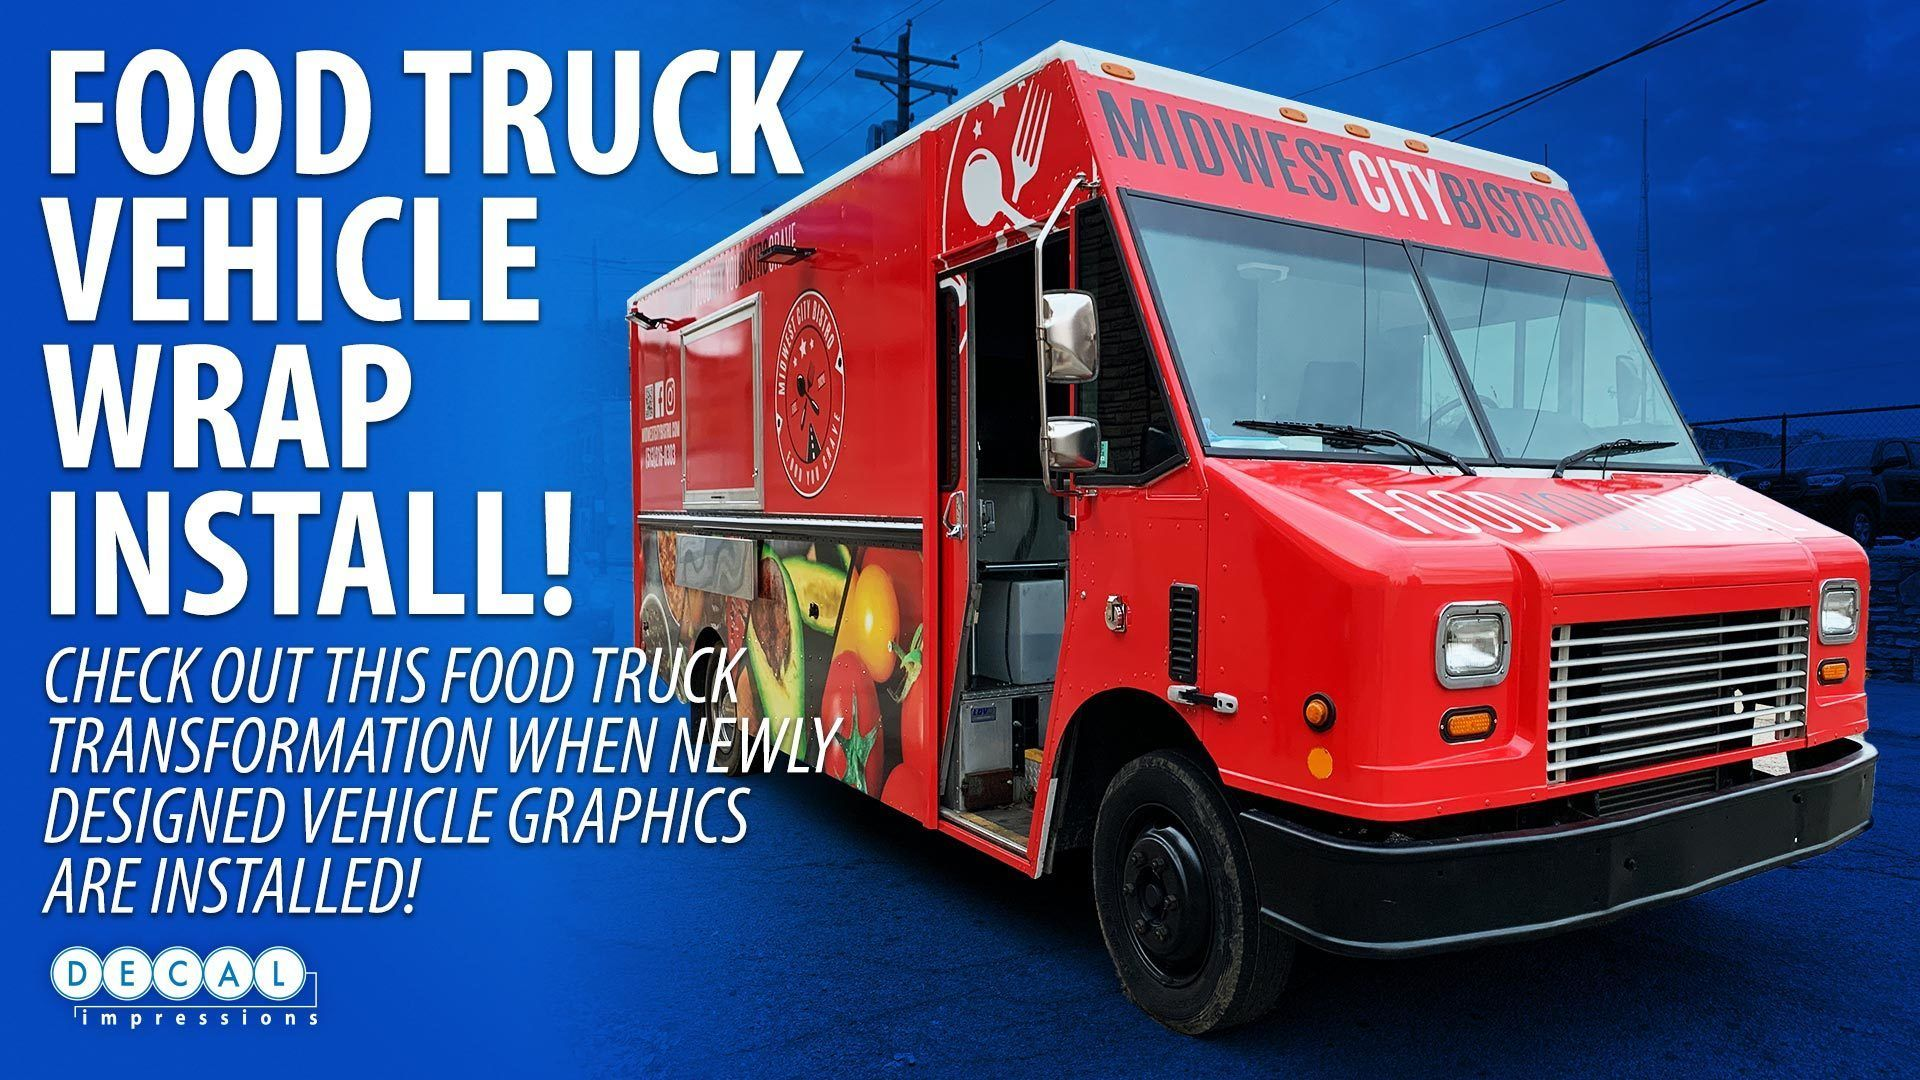 Midwest City Bistro Food Truck Vehicle Wrap